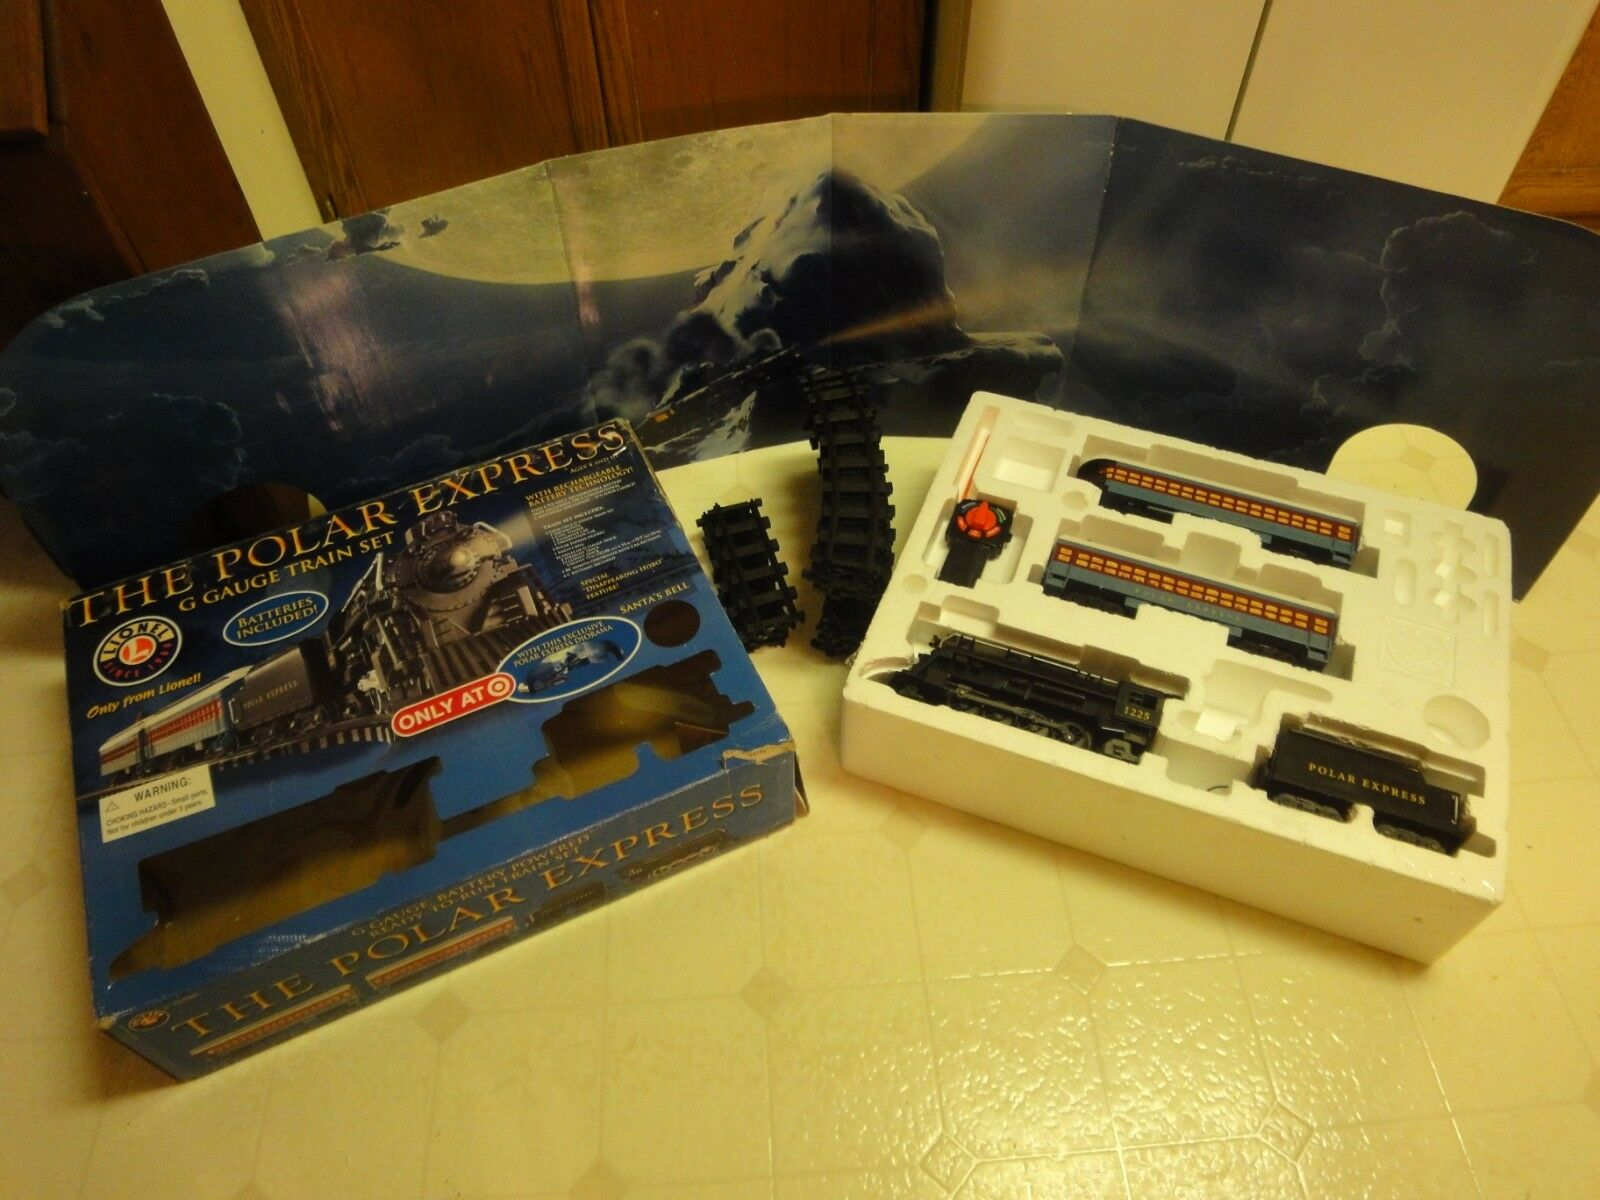 Lionel 7-11088 The Polar Express G scale train set, Target Exclusive  Works